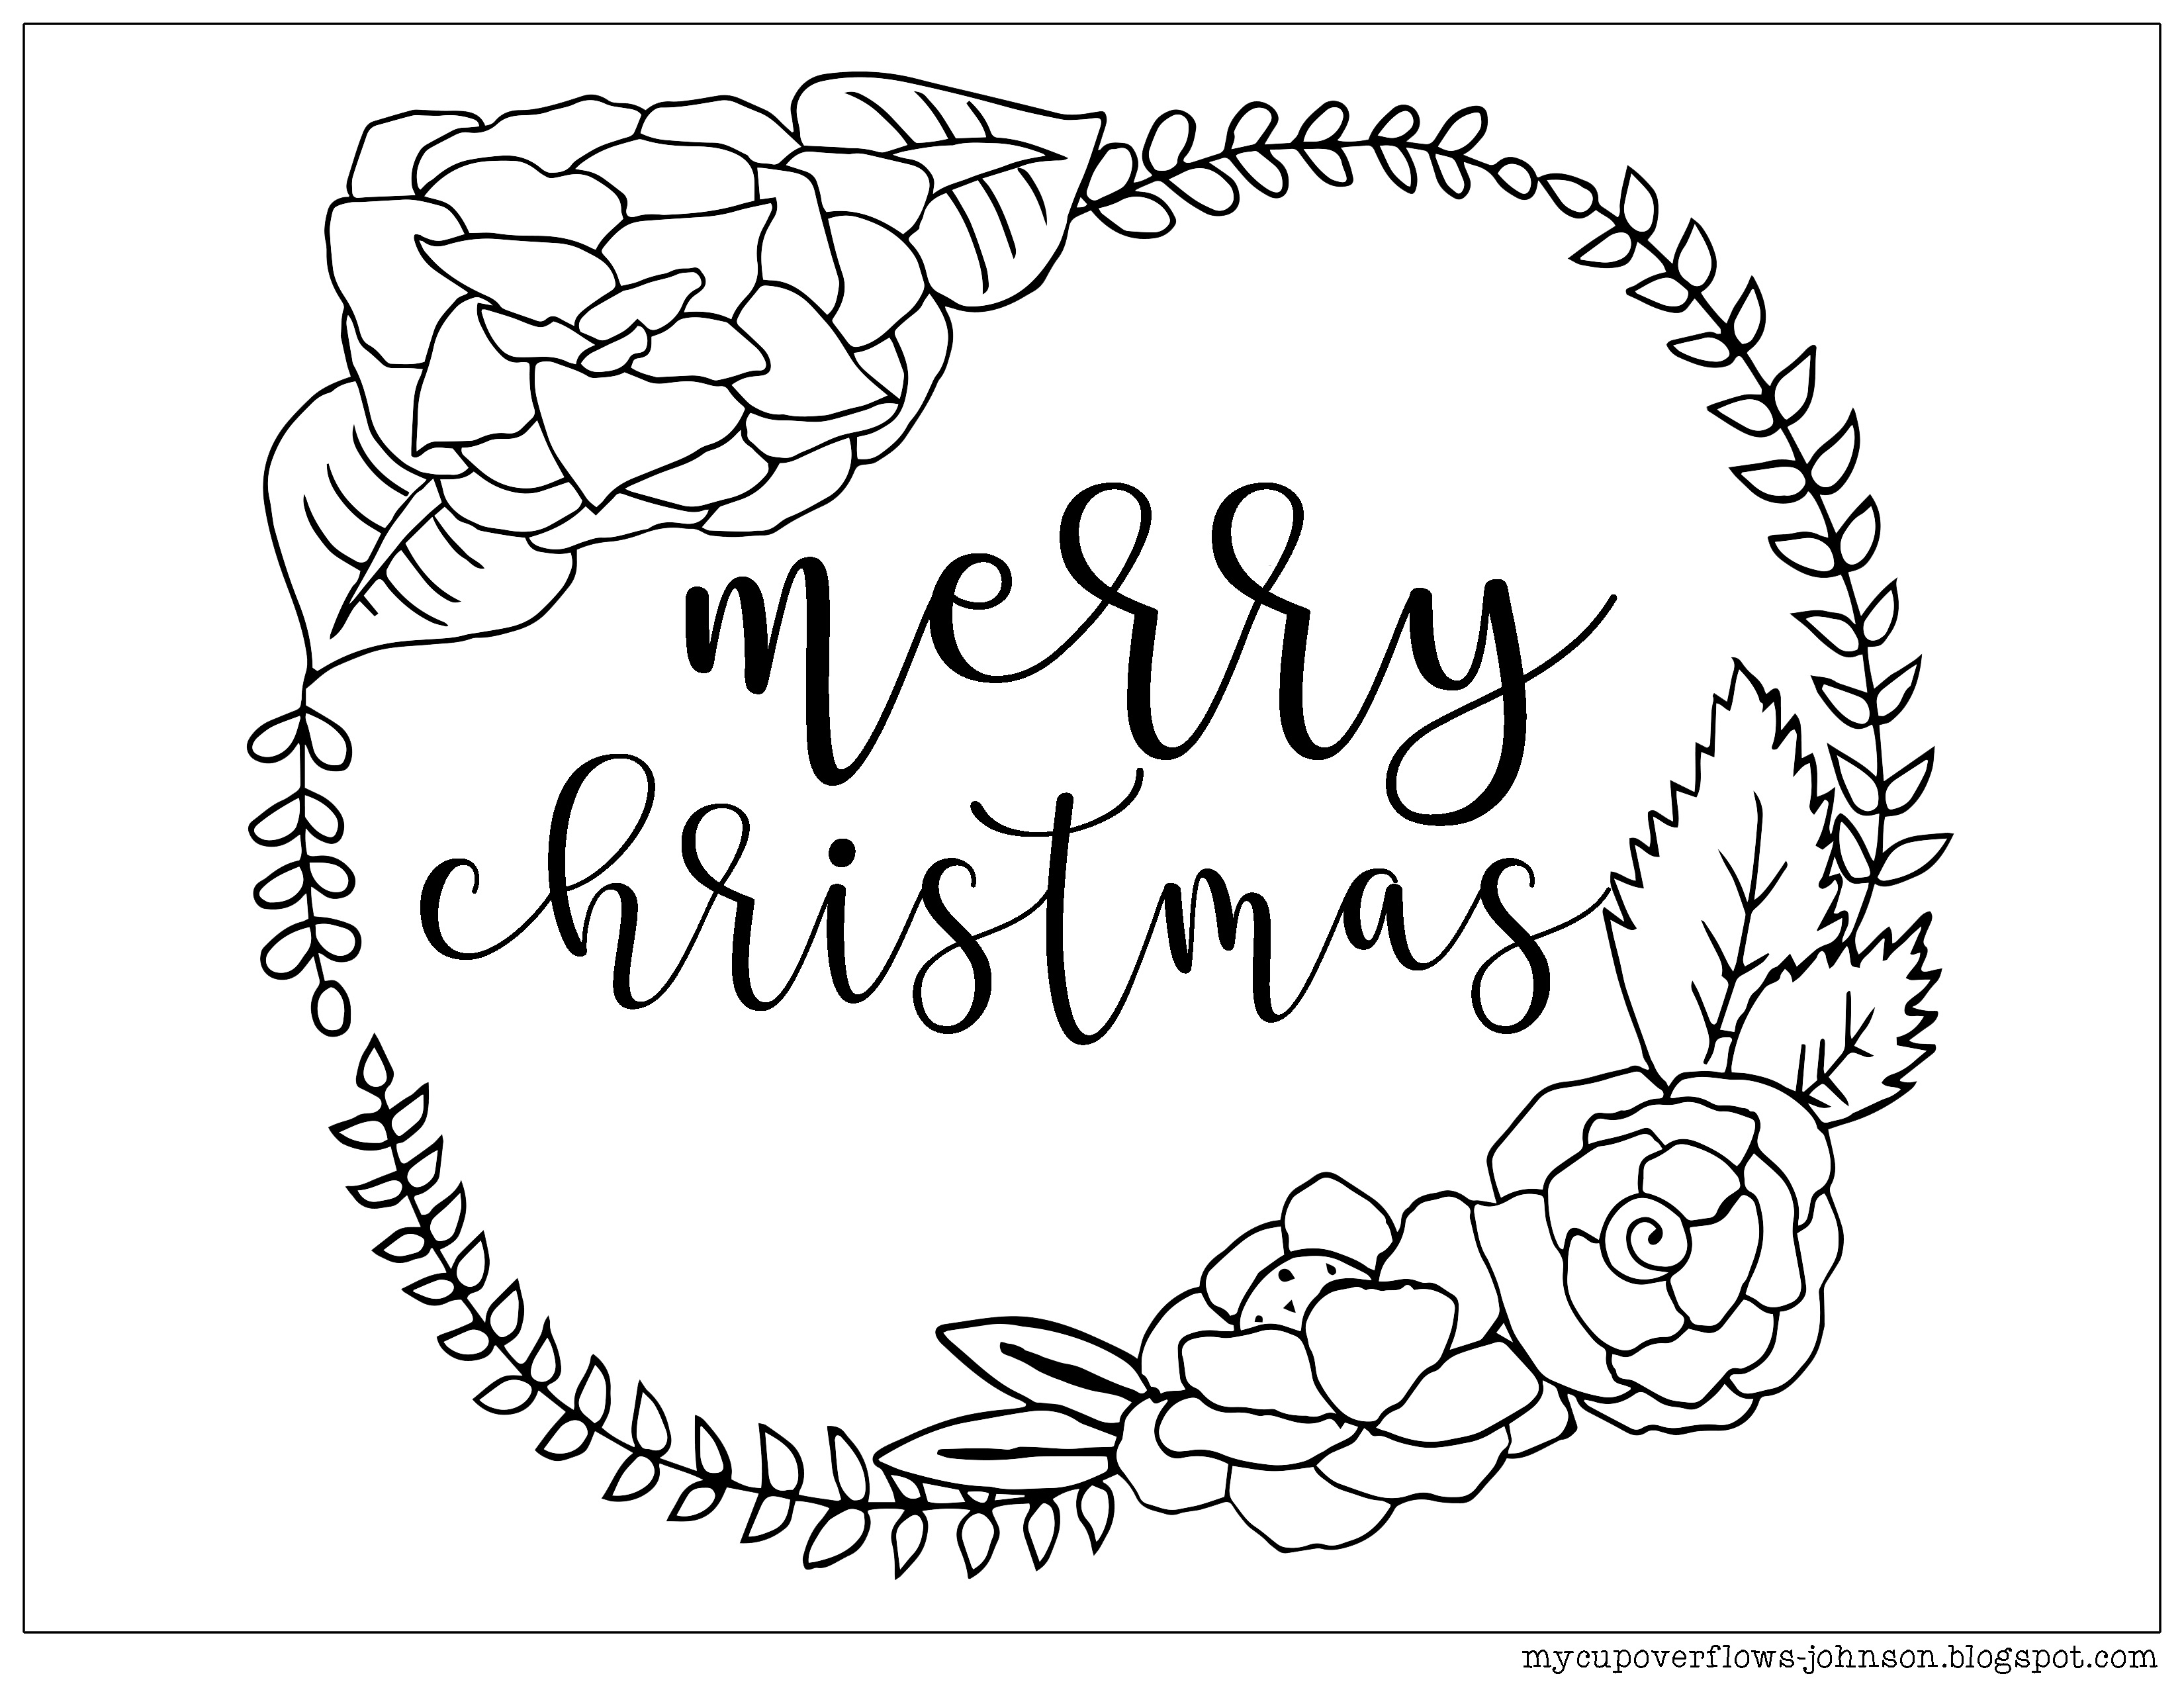 3300x2550 Awesome Merry Christmas Coloring Page With Wreath Free Coloring